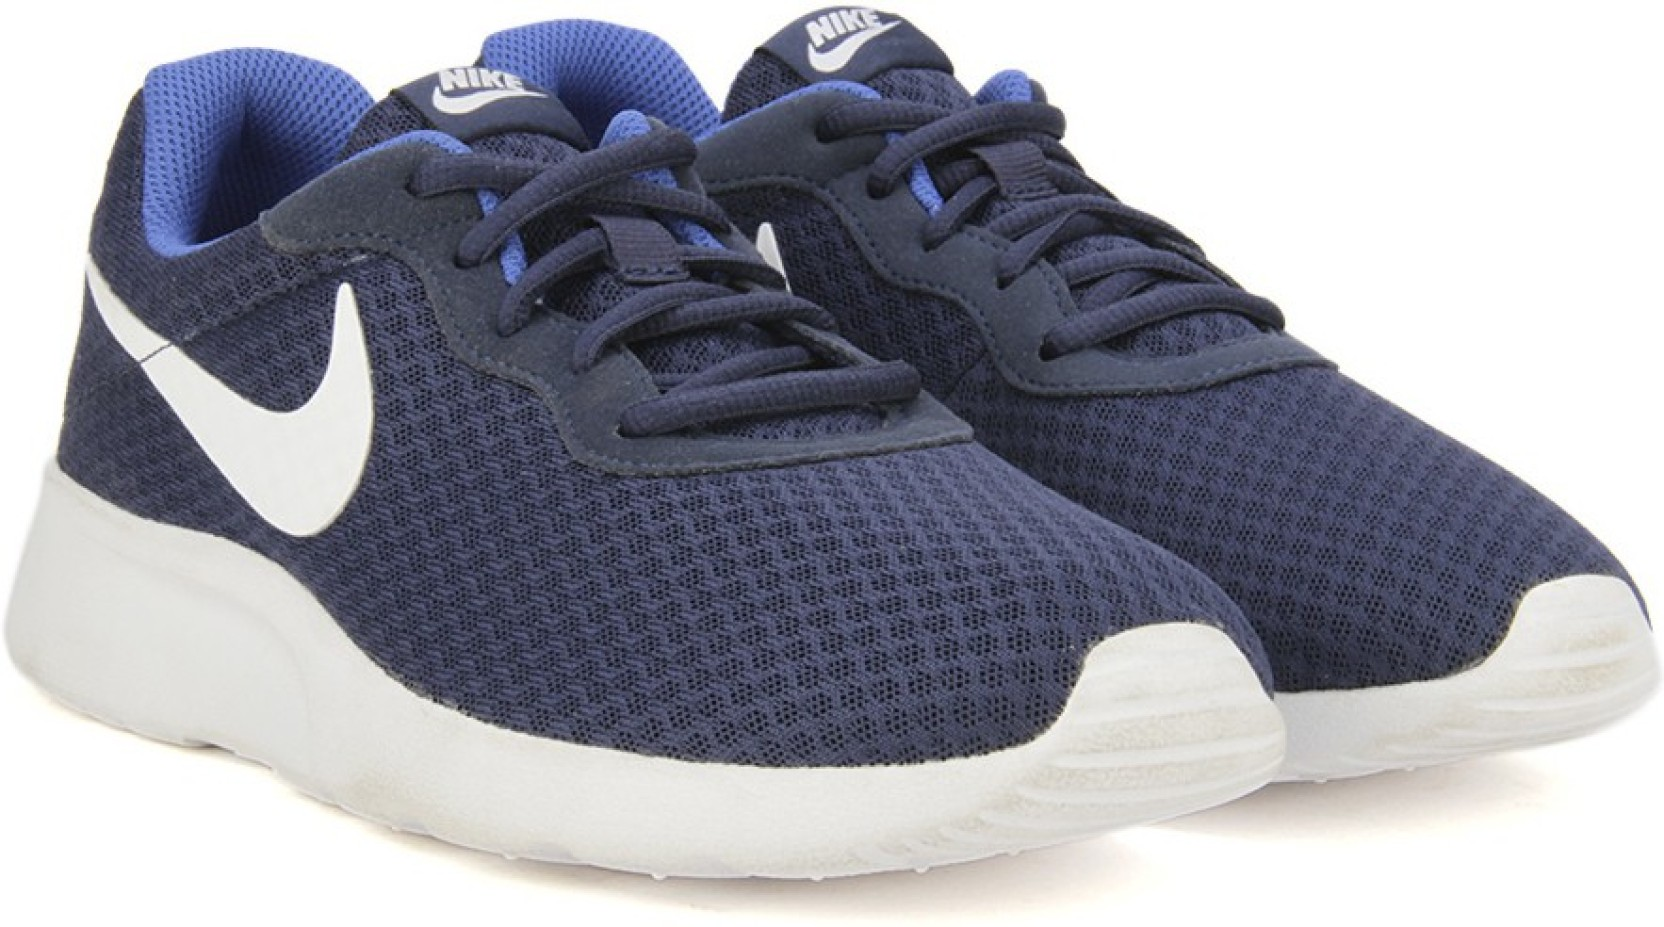 info for 5311a 2c3e3 Nike TANJUN Sneakers For Men (Navy)